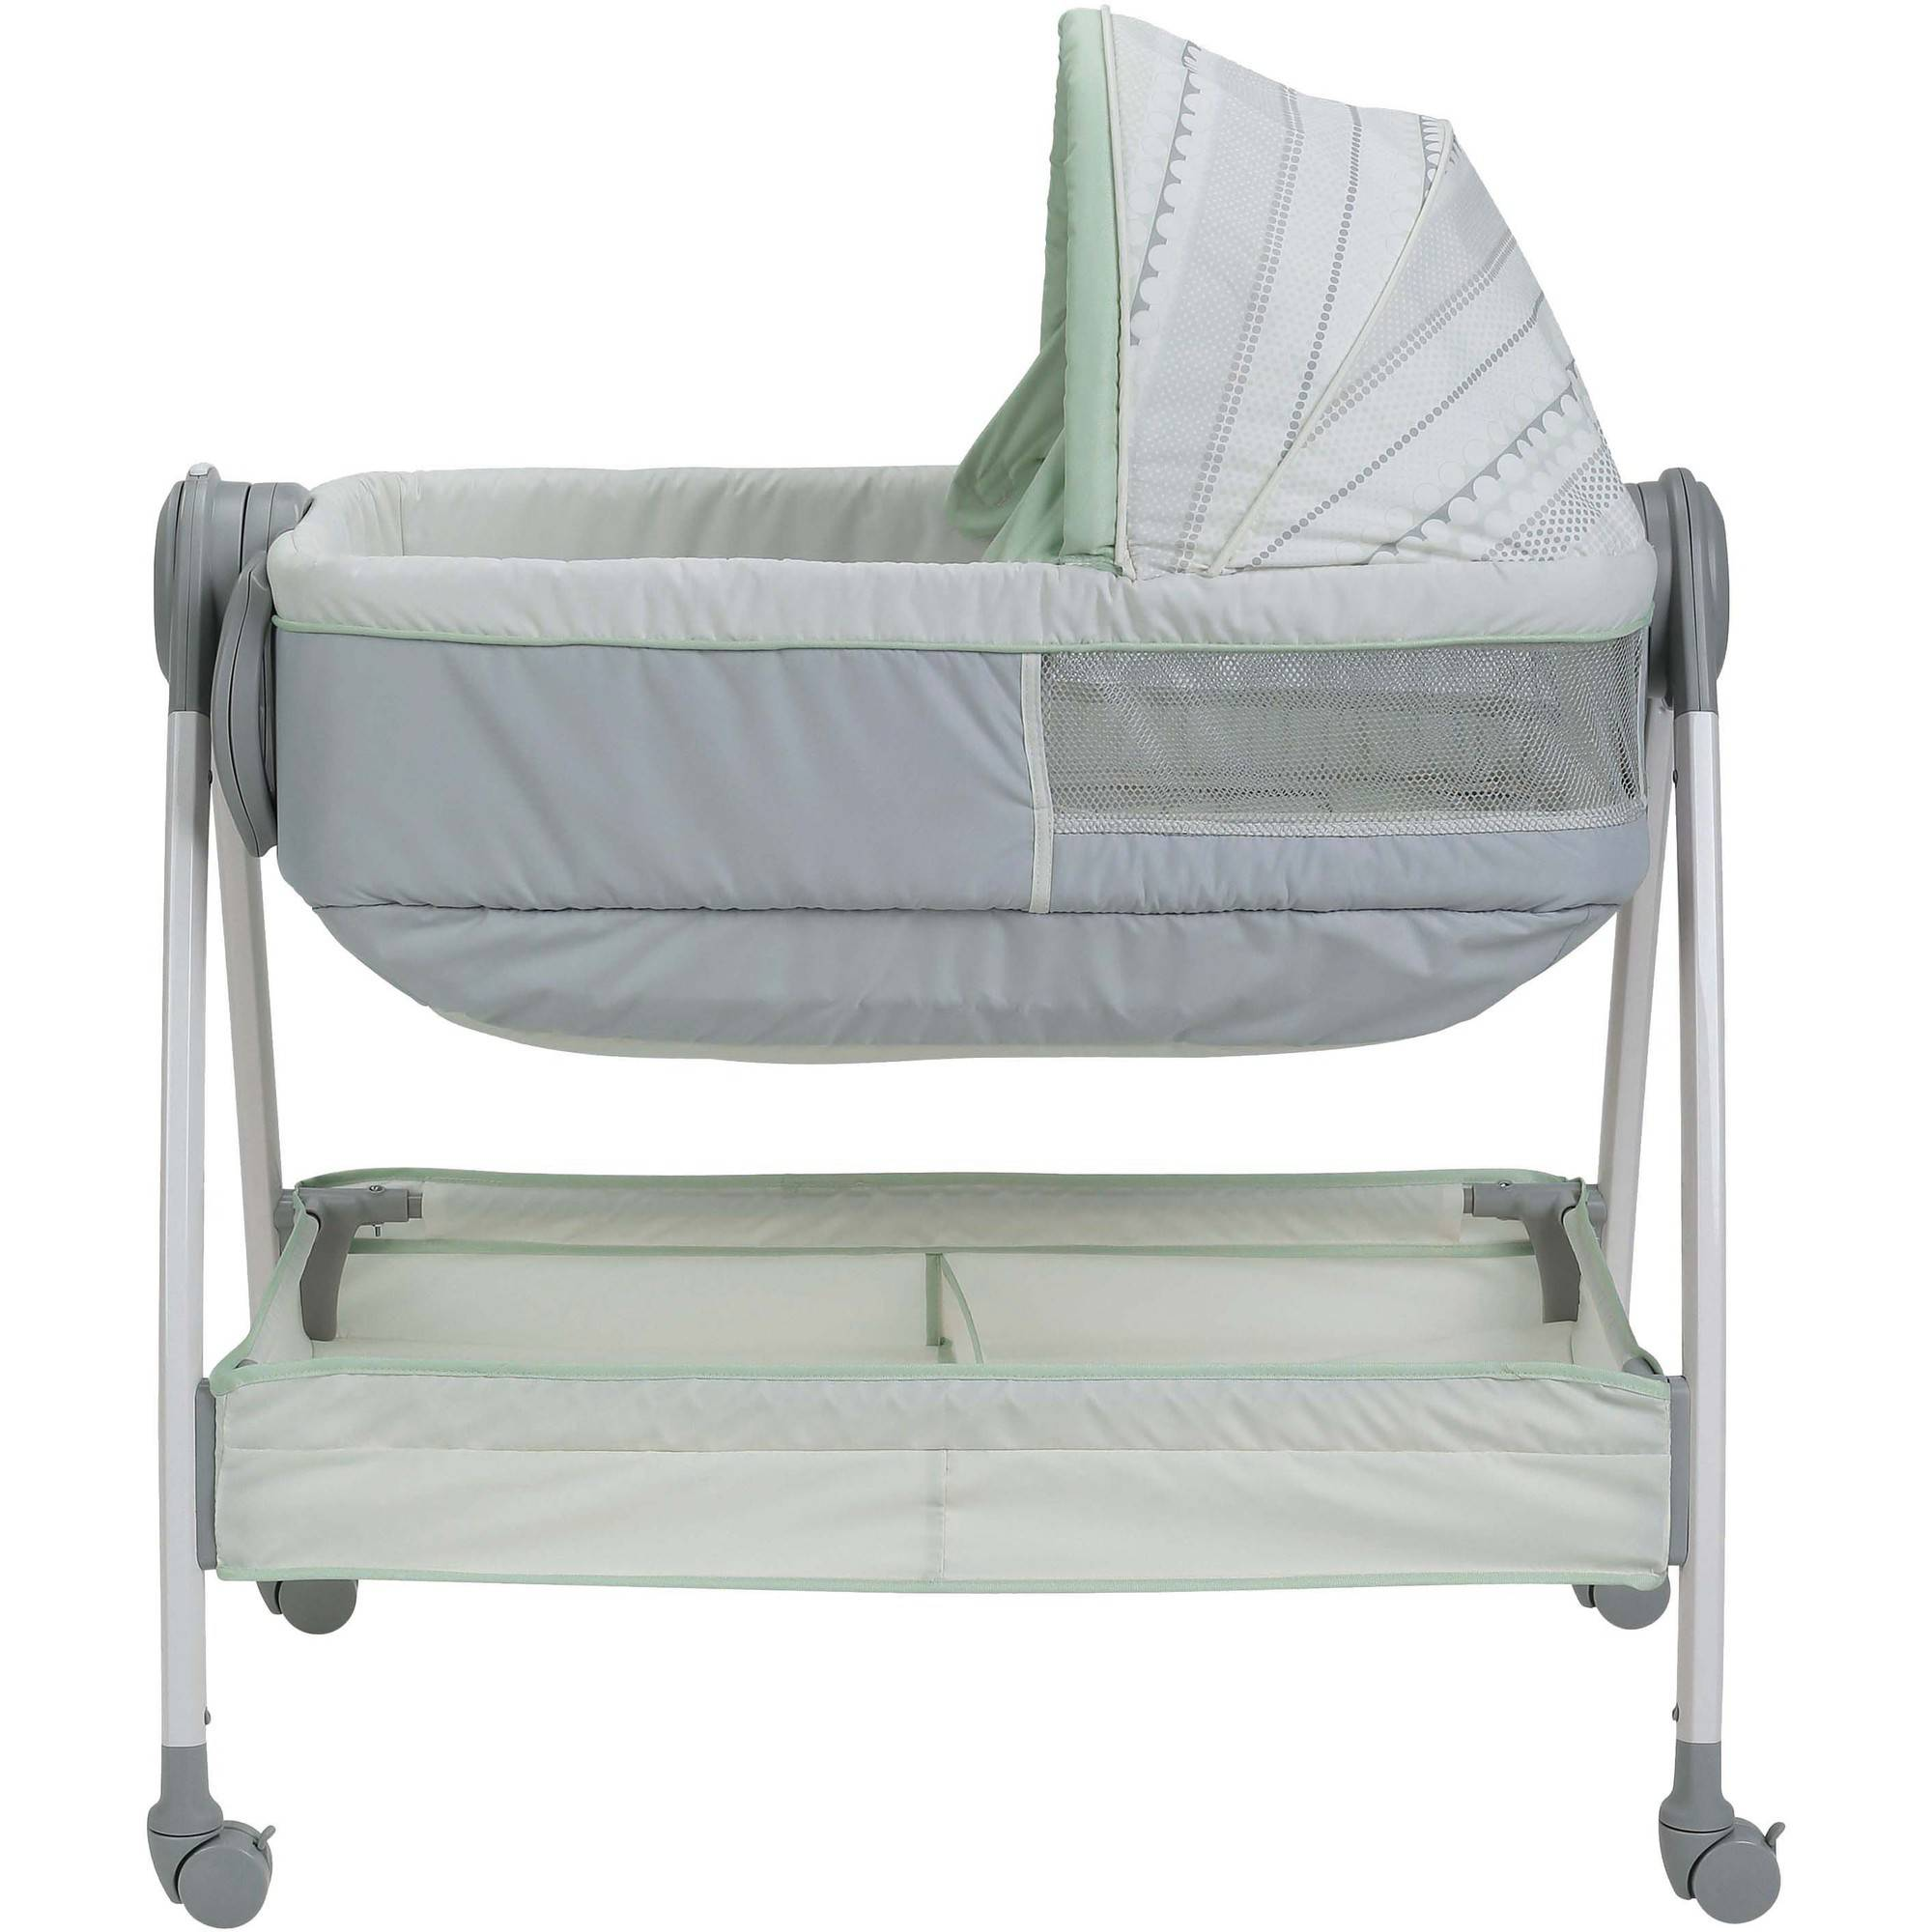 Graco Dream Suite Bassinet And Changer Mason Walmart